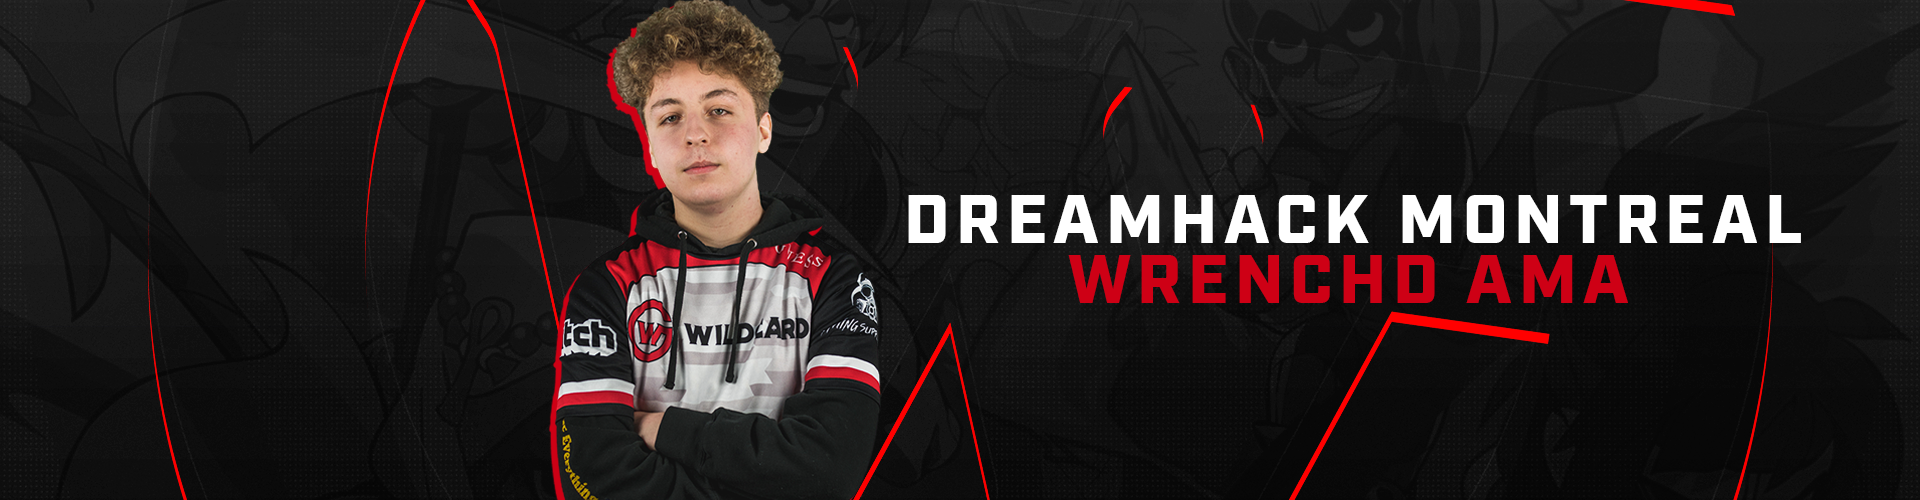 Dreamhack Preview / wrenchd AMA